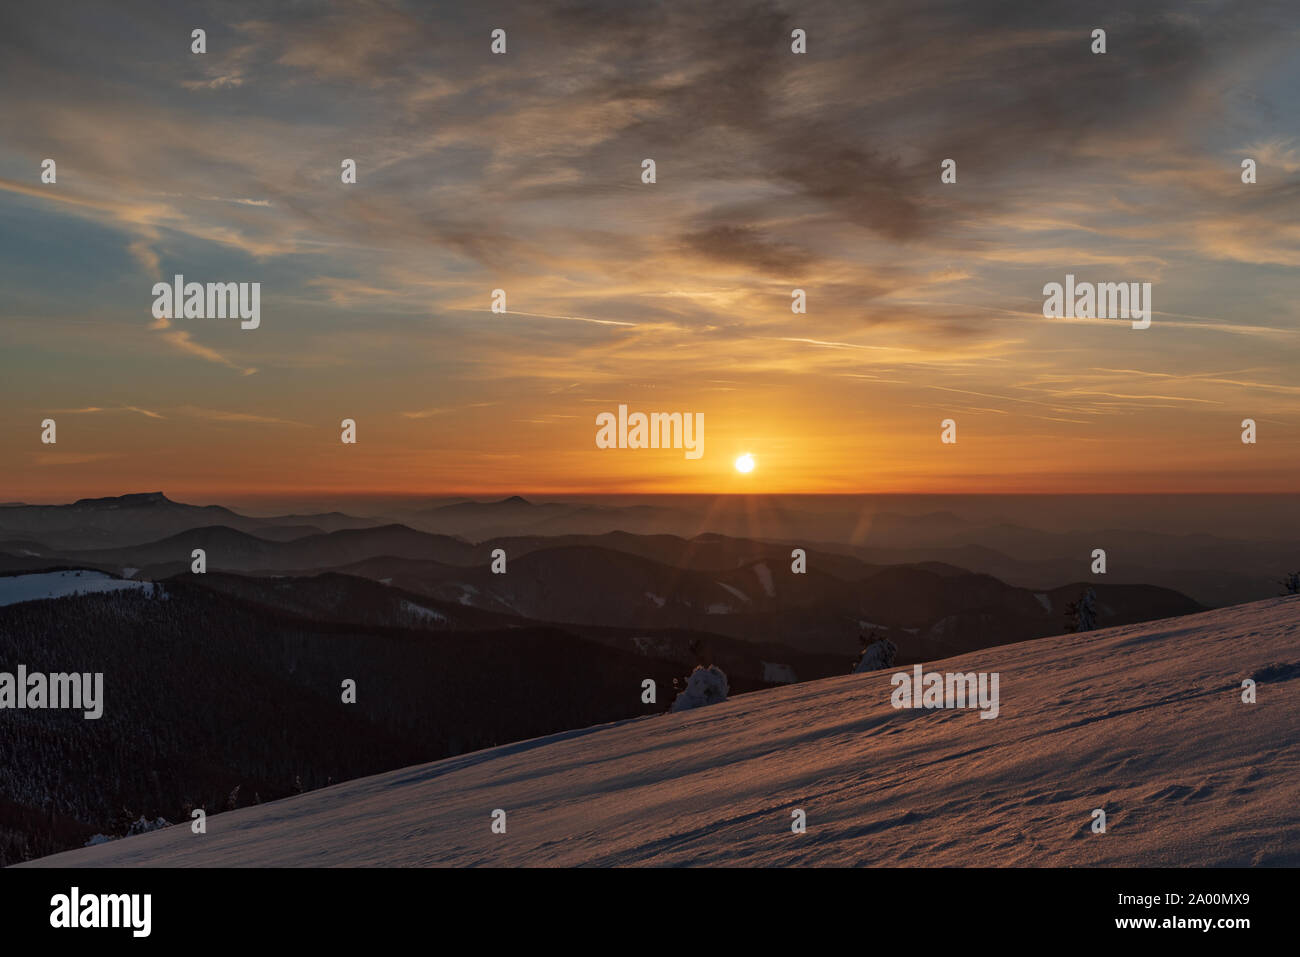 sunset from Veterne hill on Martinske hole in Mala Fatra mountains in Slovakia during winter with colorful sky Stock Photo